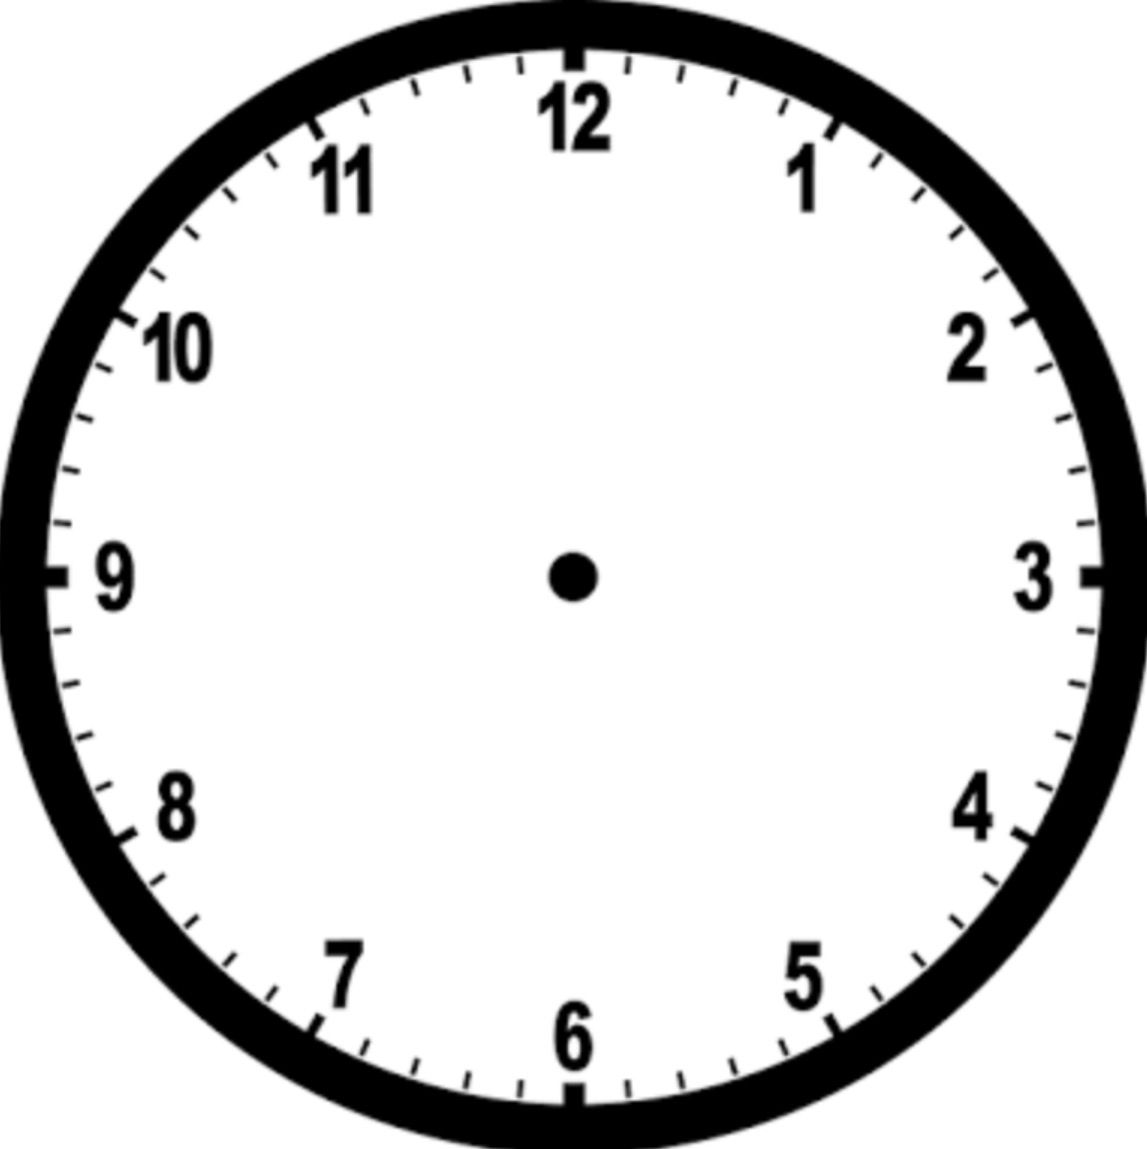 Pin by Jim Garrison on Clock Face Templates | Pinterest | Face ...